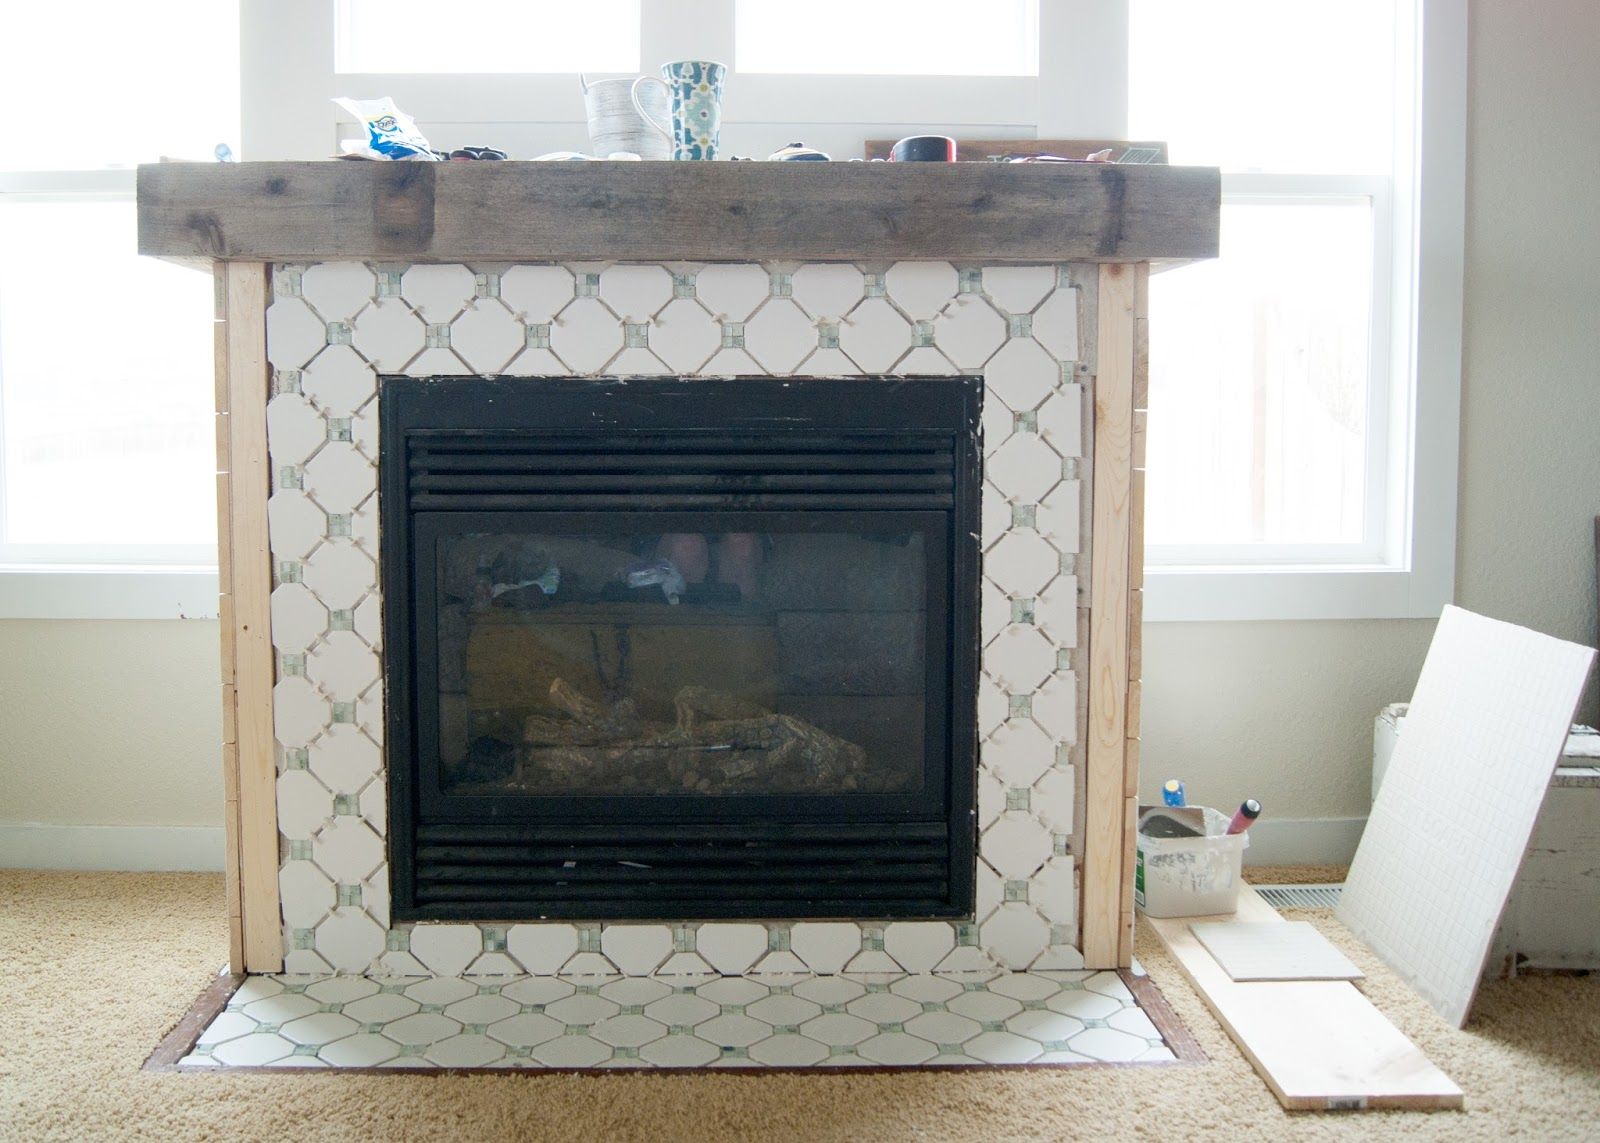 Paint & the best tool ever for caulking! | Averie Lane: Fireplace Makeover - Grout